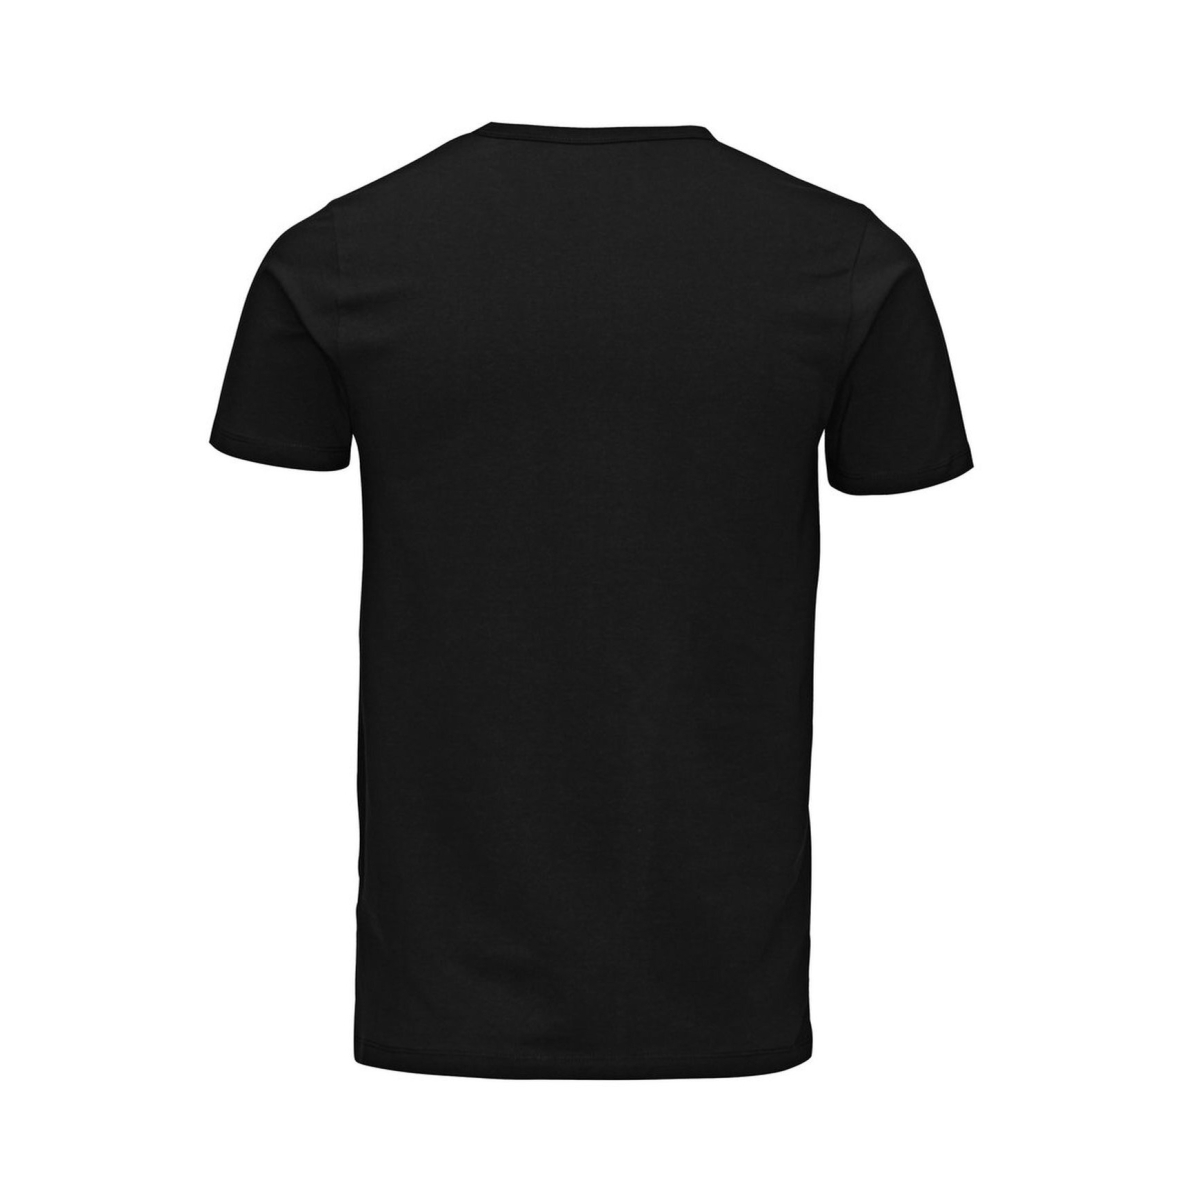 basic o-neck tee 12058529 jack & jones t-shirt black